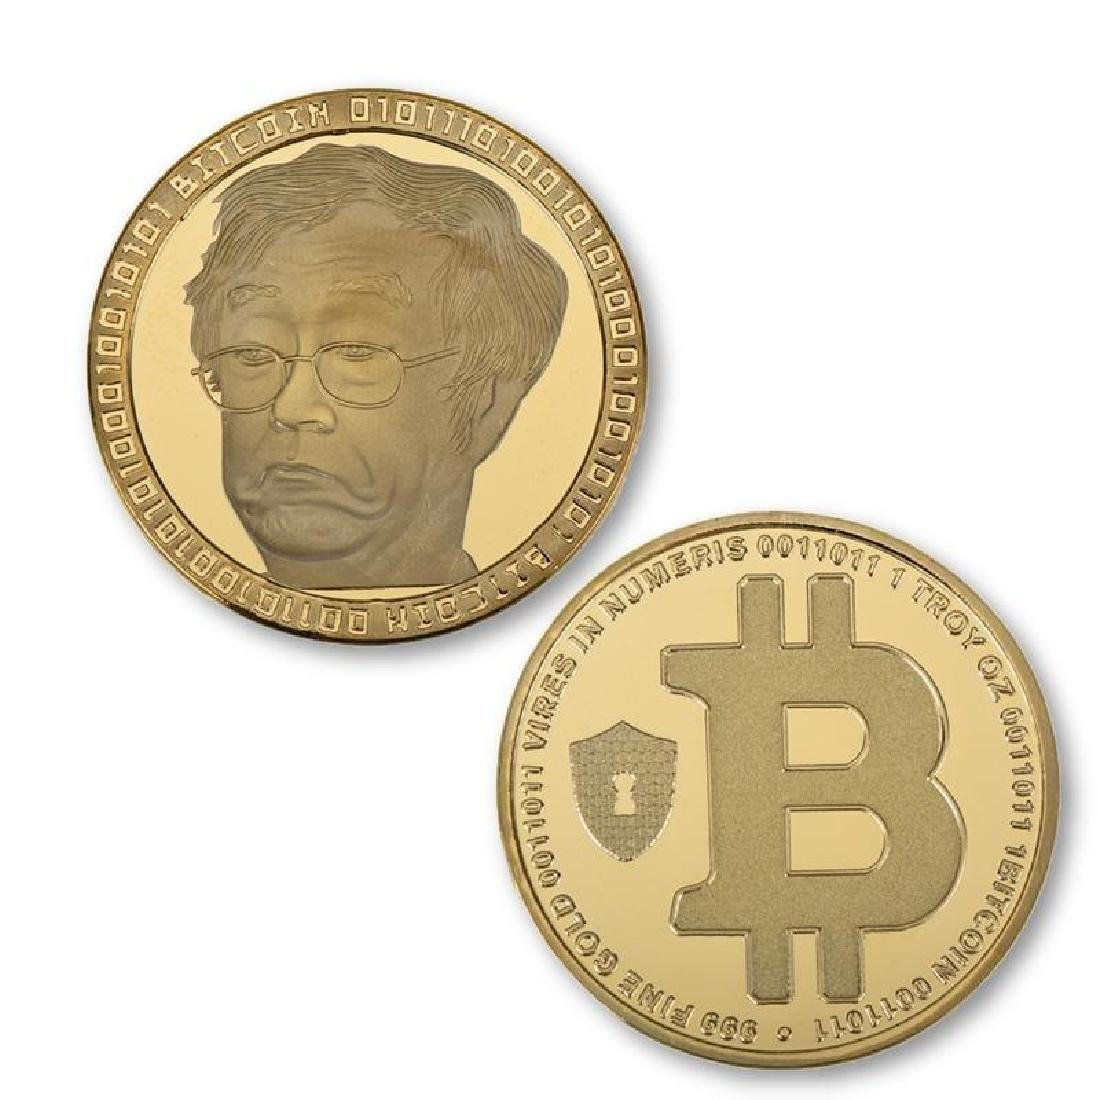 4 Bitcoin Silver and Gold Clad Collectible Coins - 3